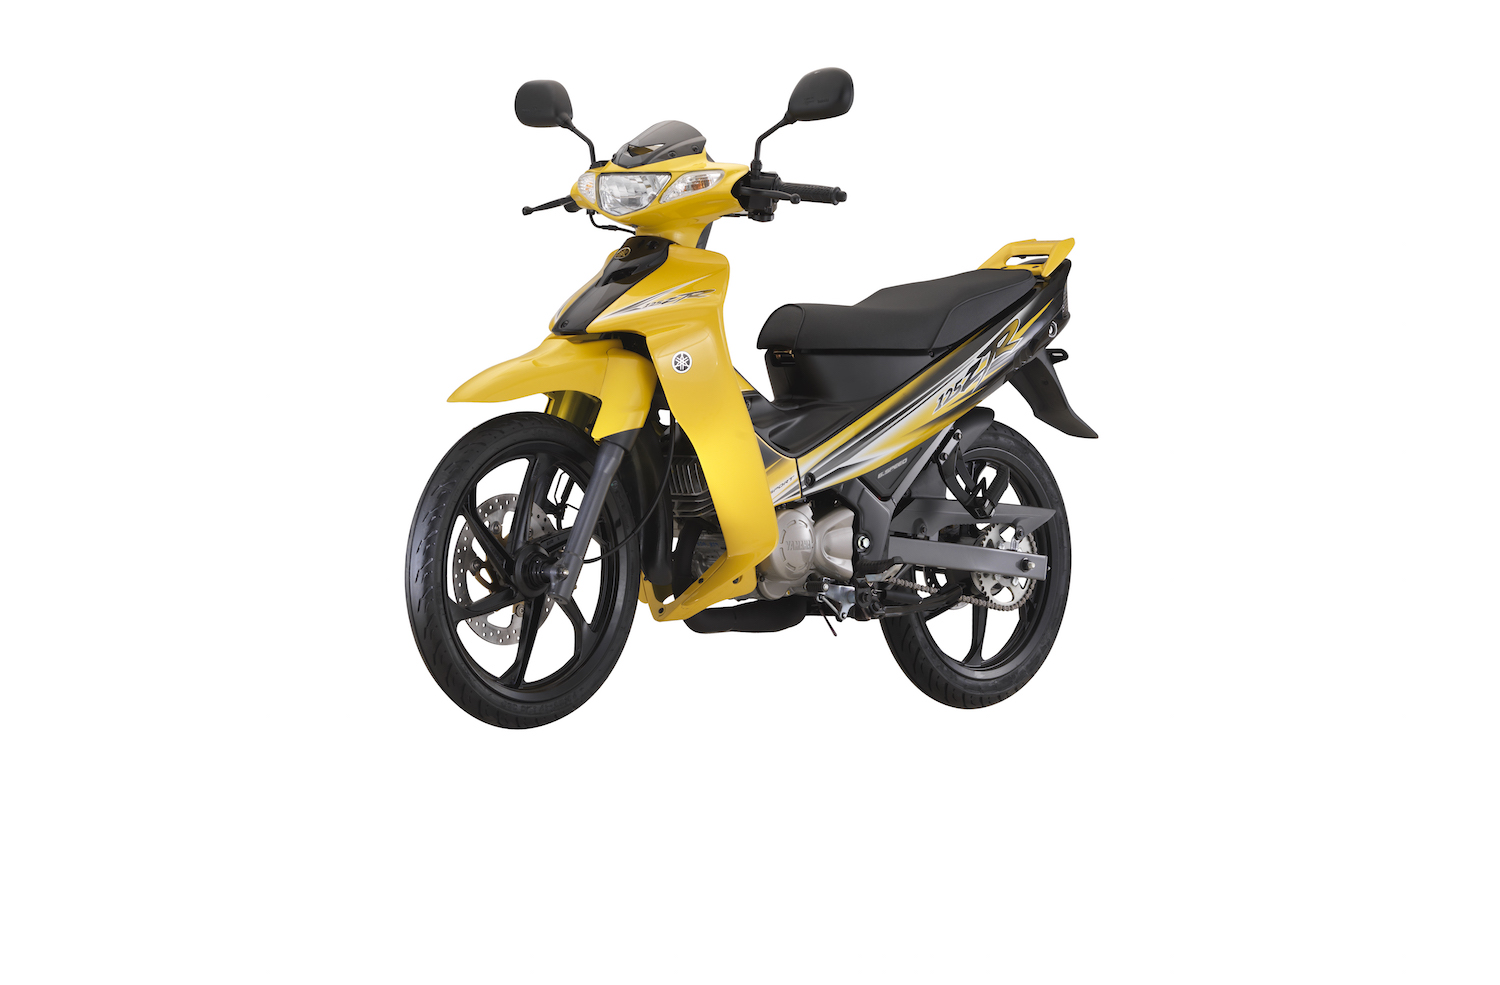 2016 Yamaha 125zr Available In Yellow Rm7 269 Wemotor Com